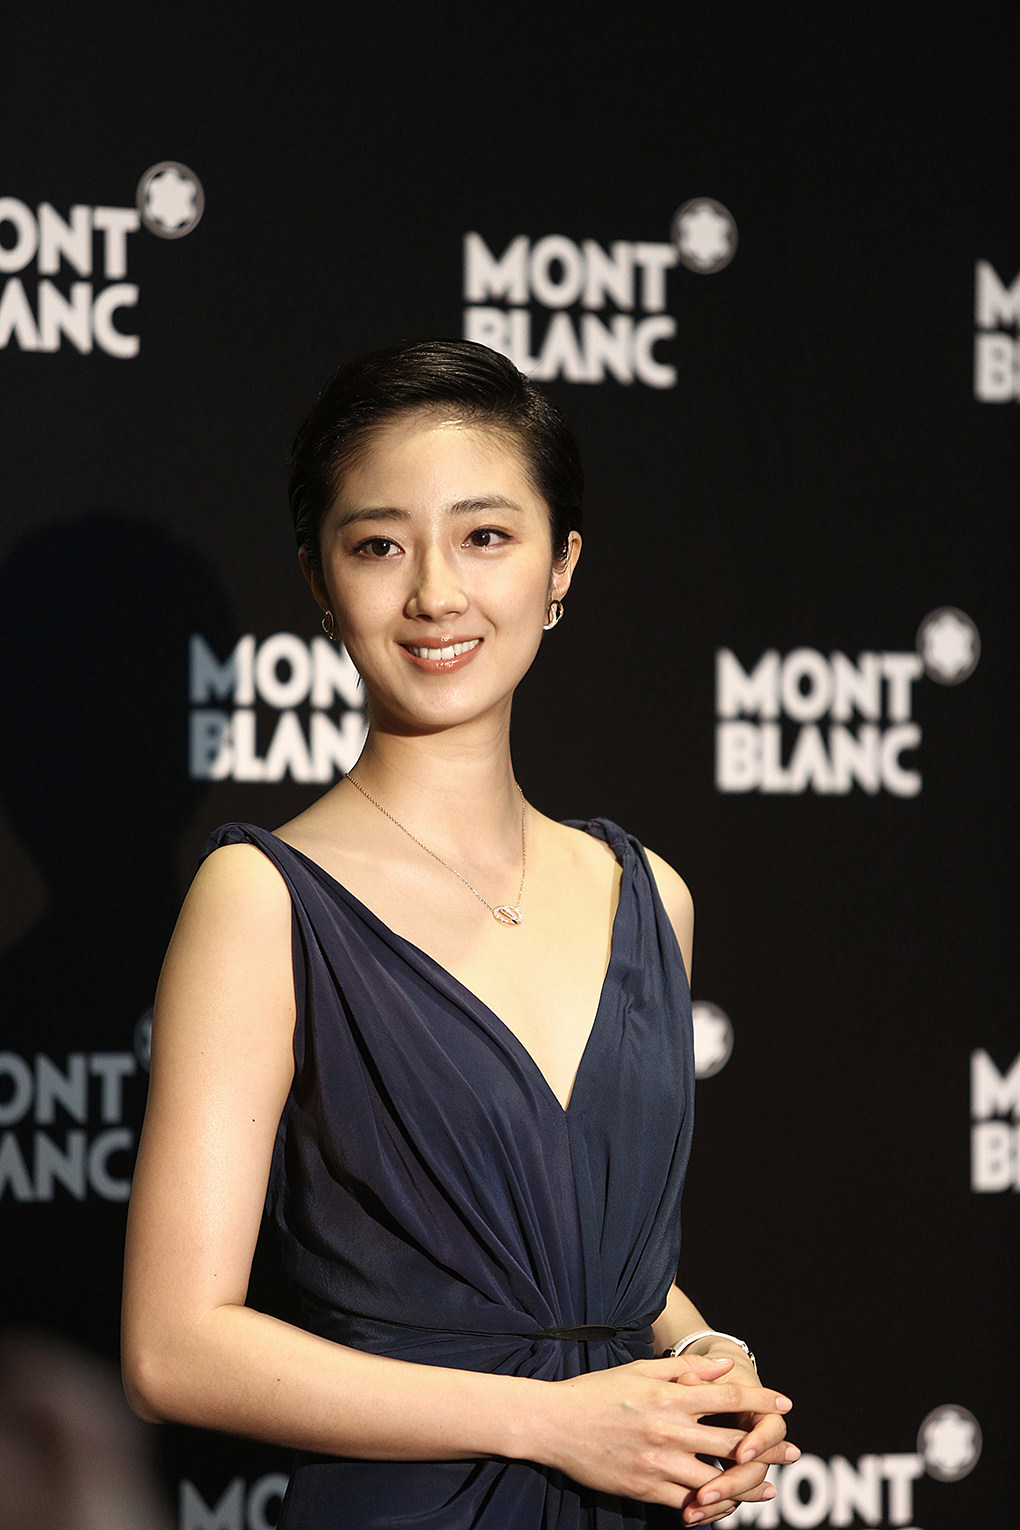 movie-star-gwai-lun-mei-appointed-brand-ambassador-of-montblanc-china